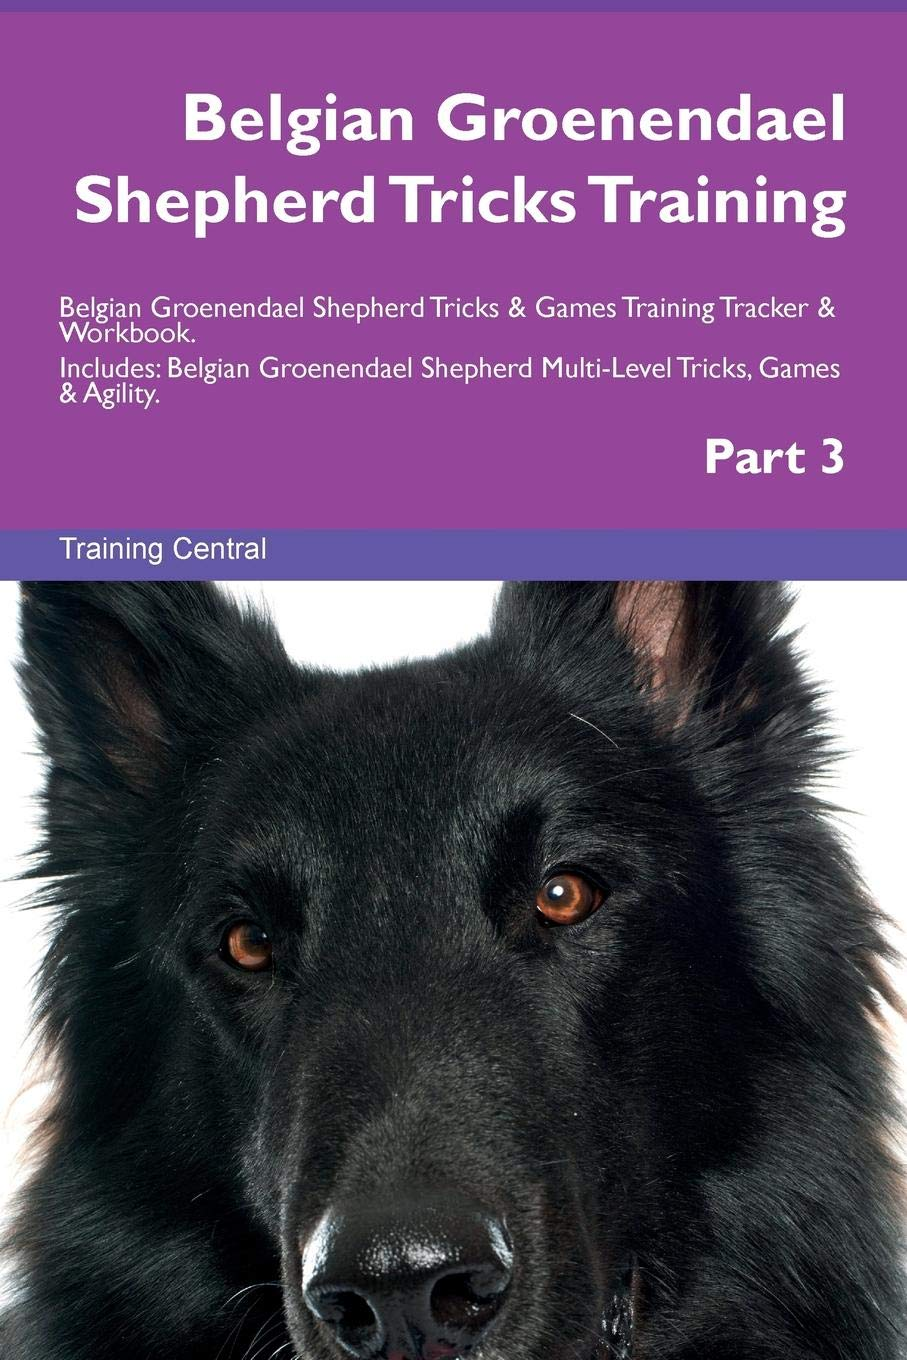 Belgian Groenendael Shepherd Tricks Training Belgian Groenendael Shepherd Tricks & Games Training Tracker & Workbook.  Includes: Belgian Groenendael … Multi-Level Tricks, Games & Agility. Part 3